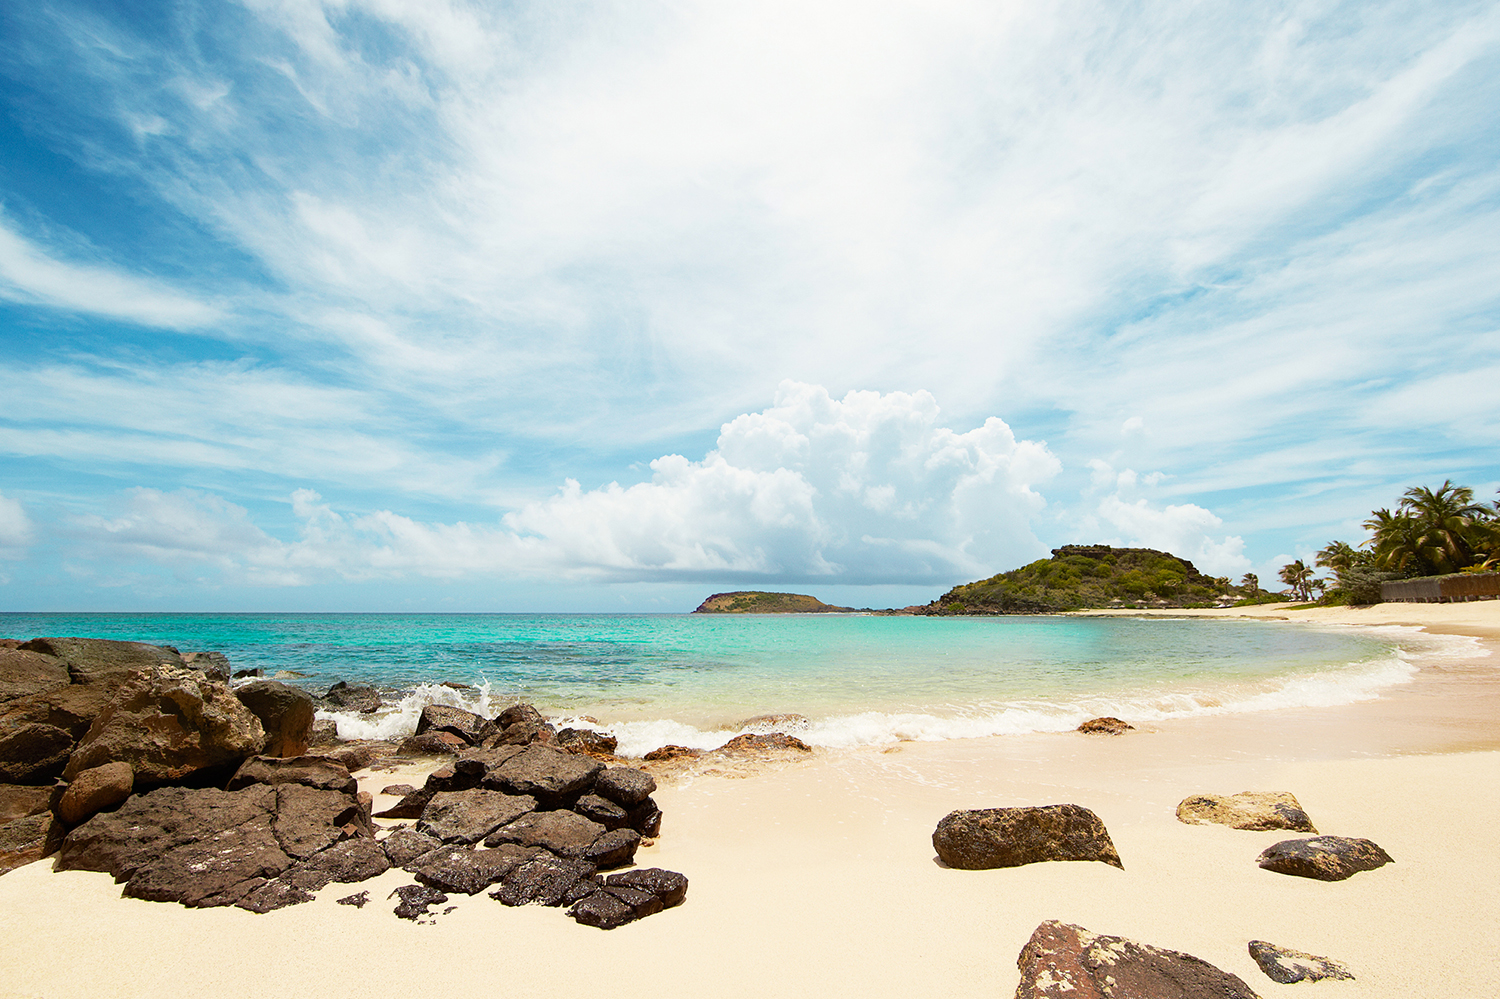 THE BEACH AT ANSE MARECHAL